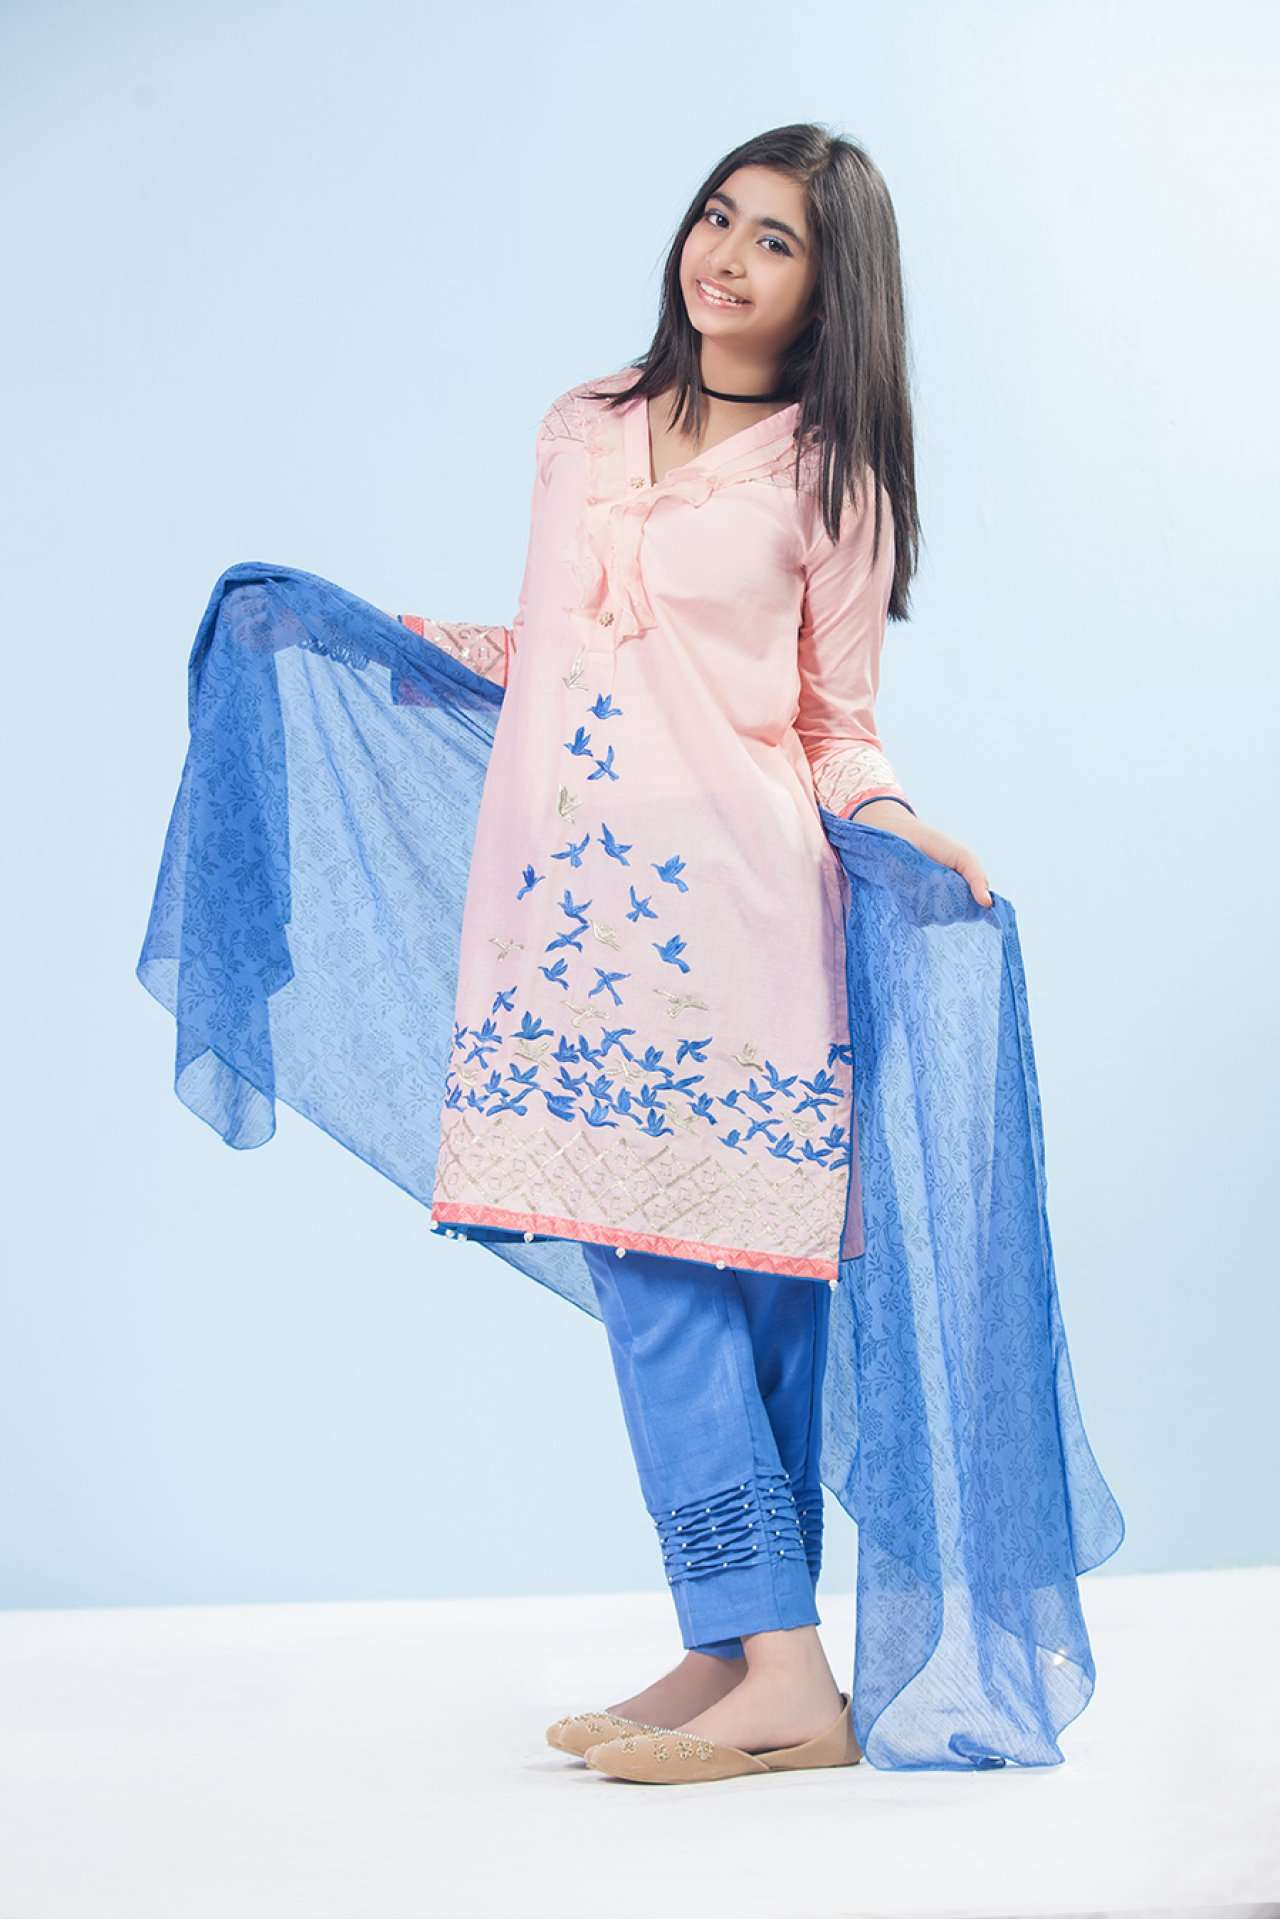 Ochre Cotton Embroidered 3 Piece Suits for Girls - Pink OFK 537